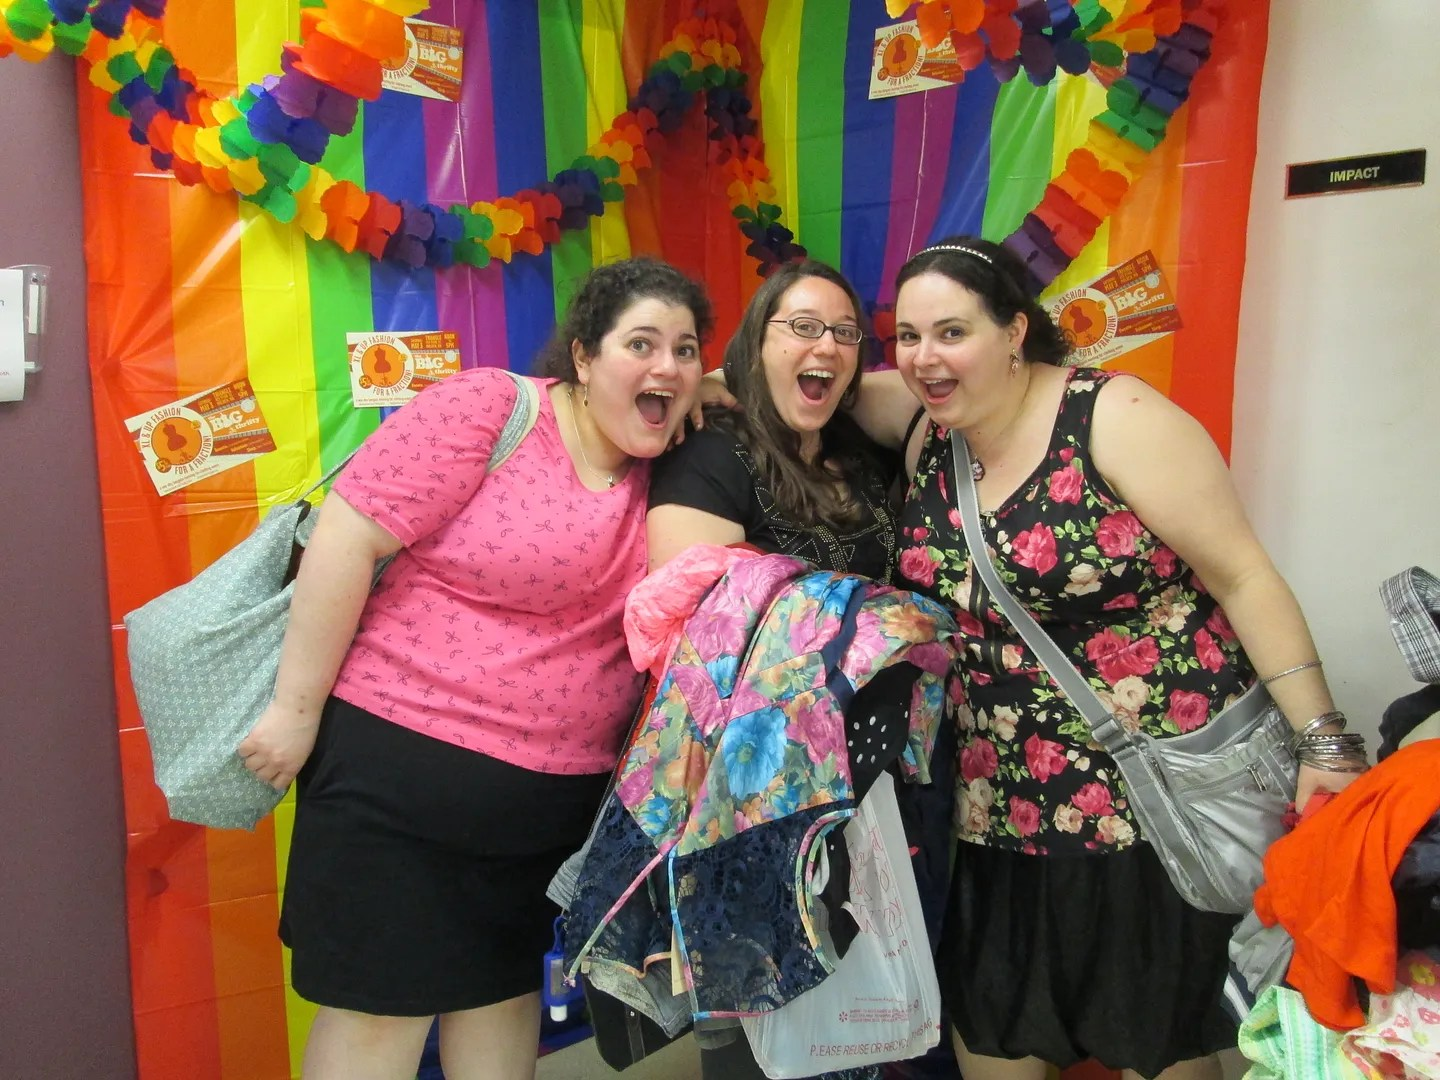 three women making silly faces in rainbow photobooth